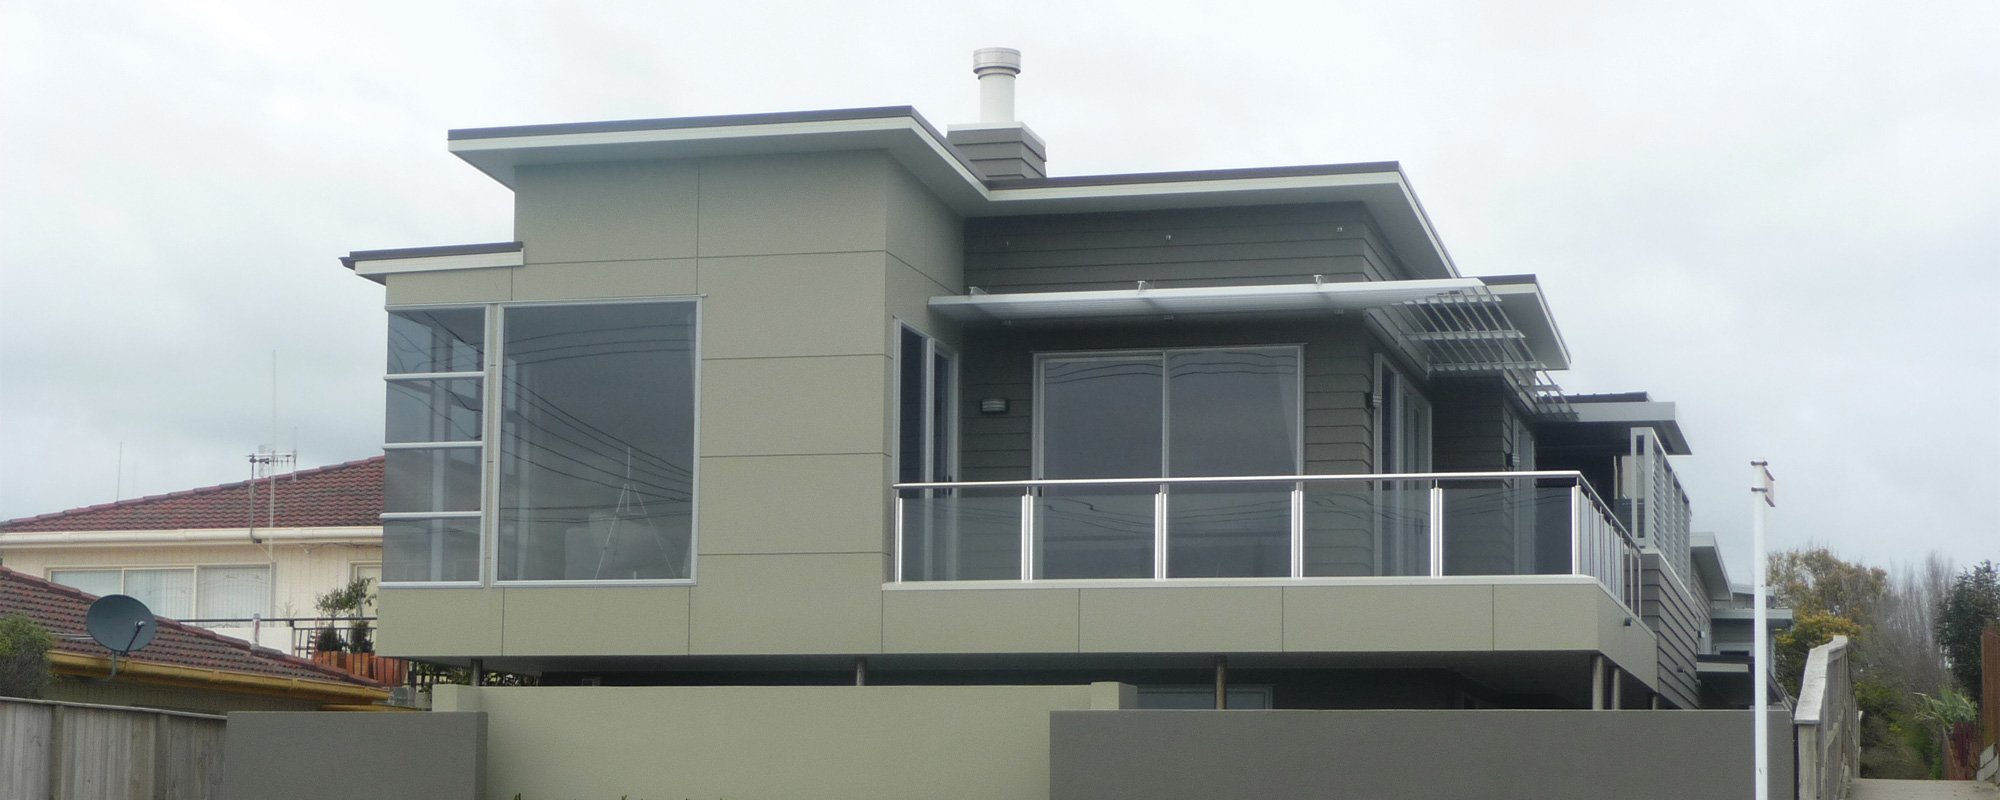 Exterior view of a newly constructed home